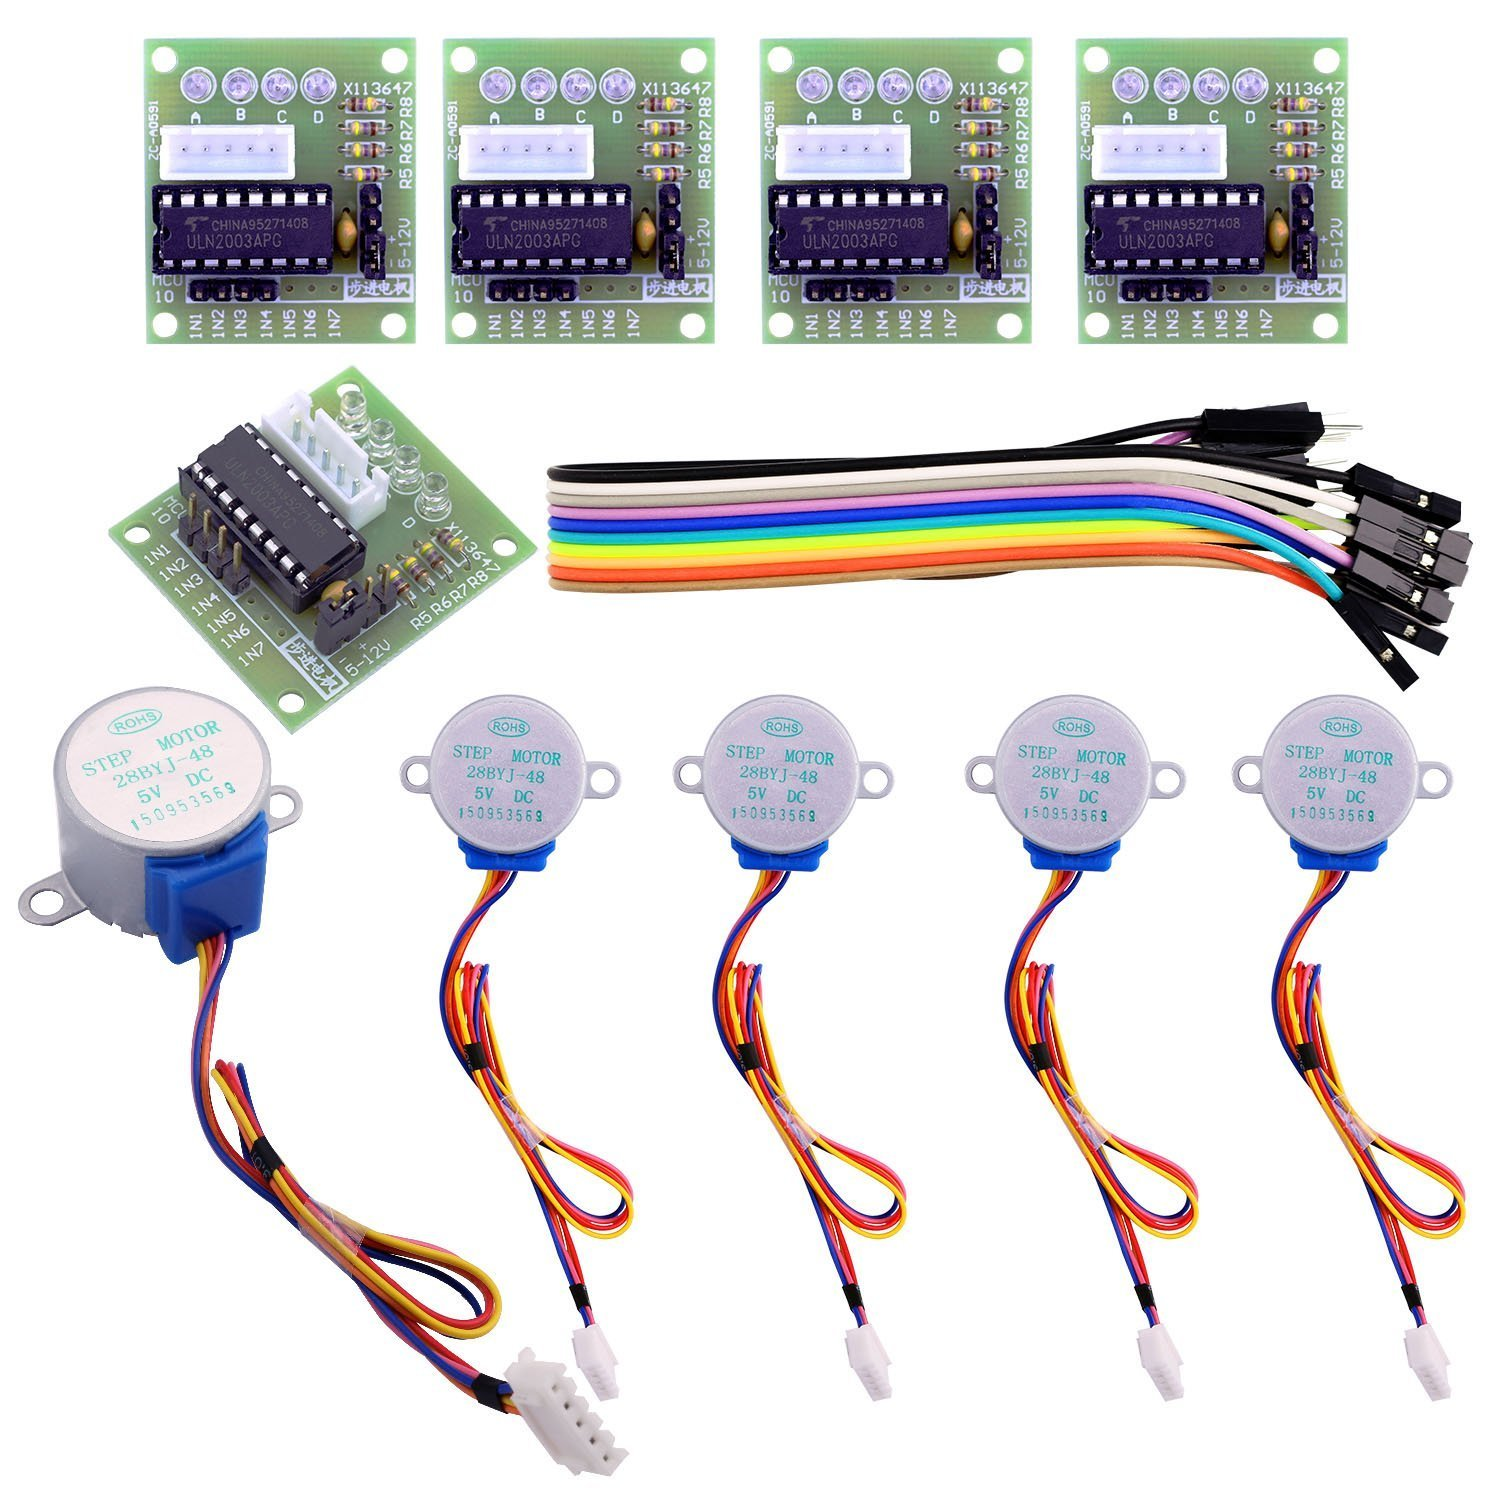 Elegoo 5 Sets 28byj 48 Uln2003 5v Stepper Motor Unipolar Control Circuit With Pic16f877 Driver Board For Arduino Camera Photo